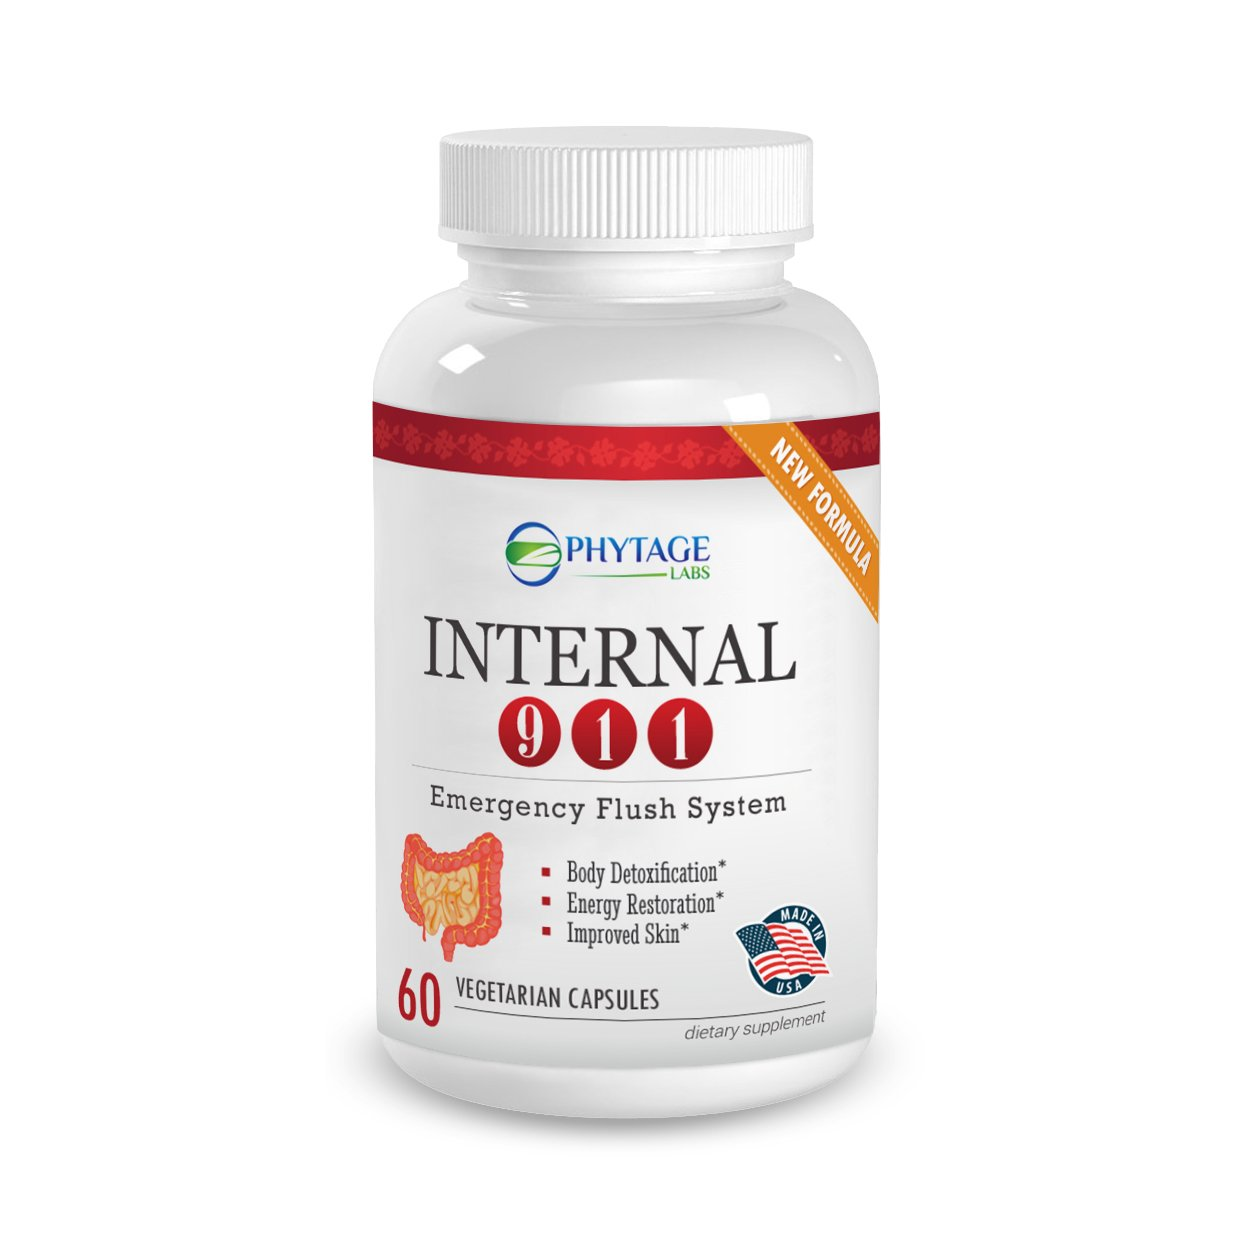 Official Phytage Labs Internal 911 Colon Cleanse Detox Supplement - Natural Laxative Cleanser Removes Toxins For Better Digestion, Weight Loss and Radiant Skin - 60 Capsules by Phytage Labs